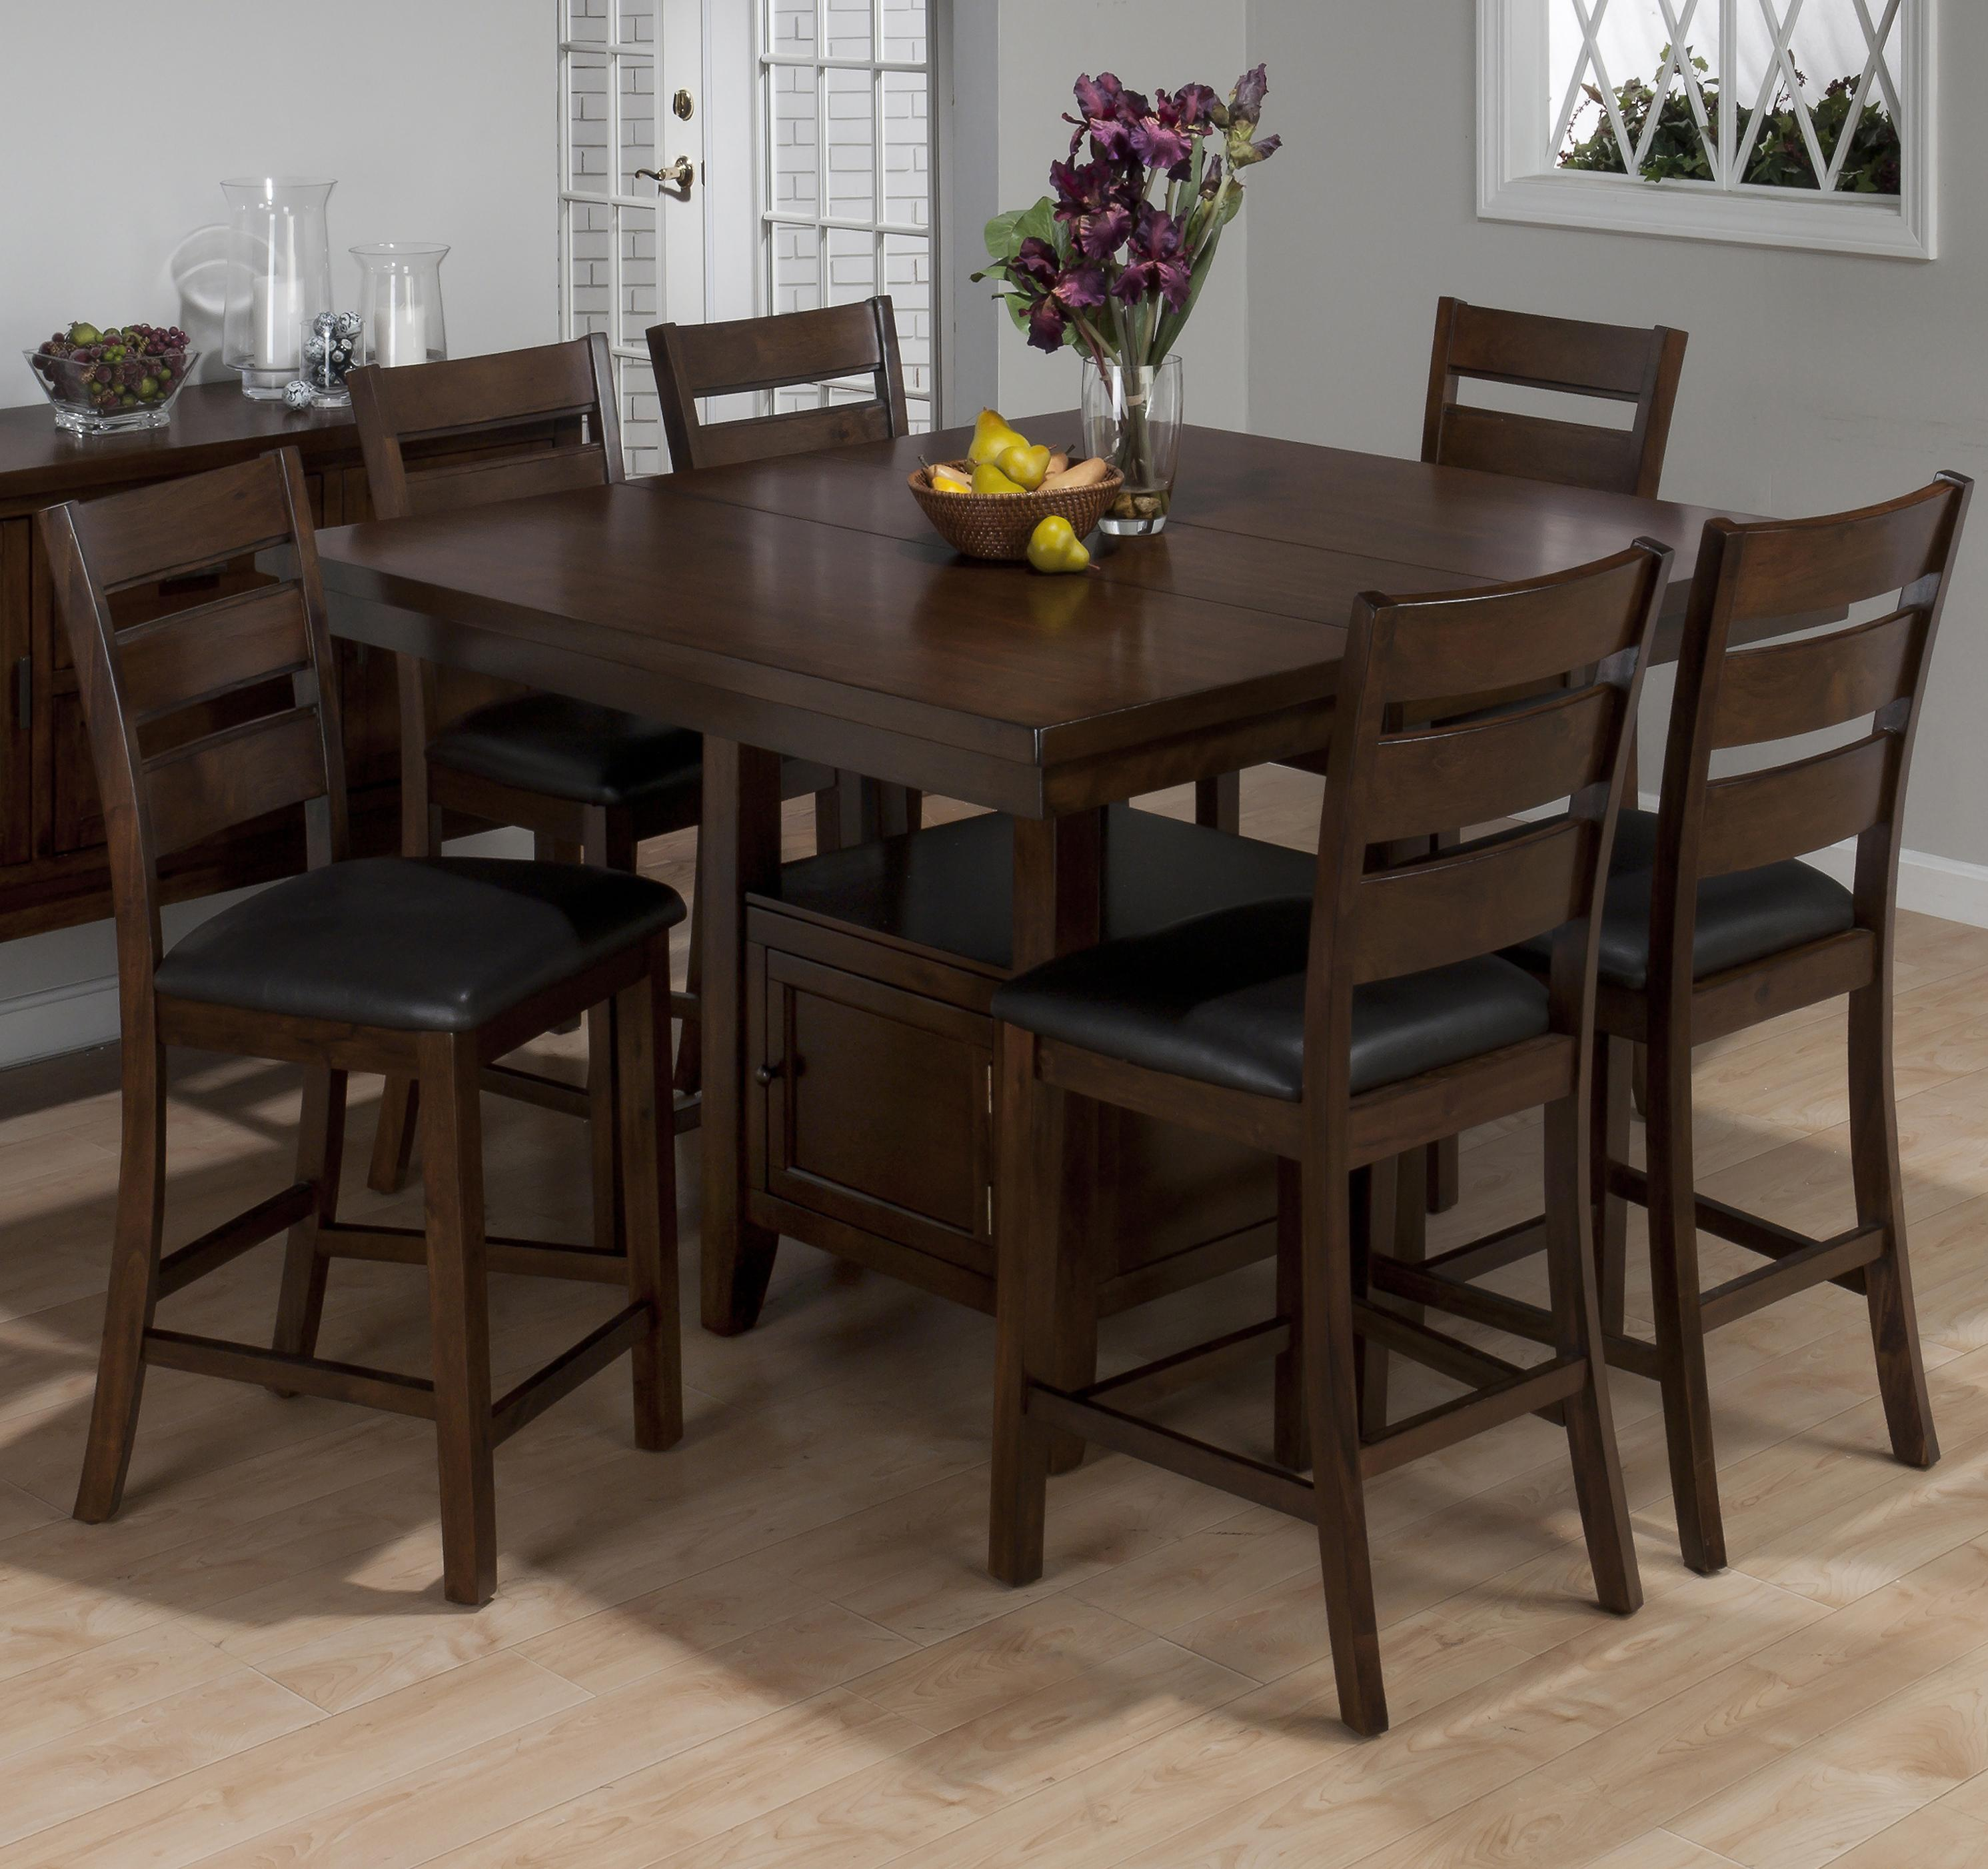 7 piece counter height dining set with storage by jofran for Counter height dining set